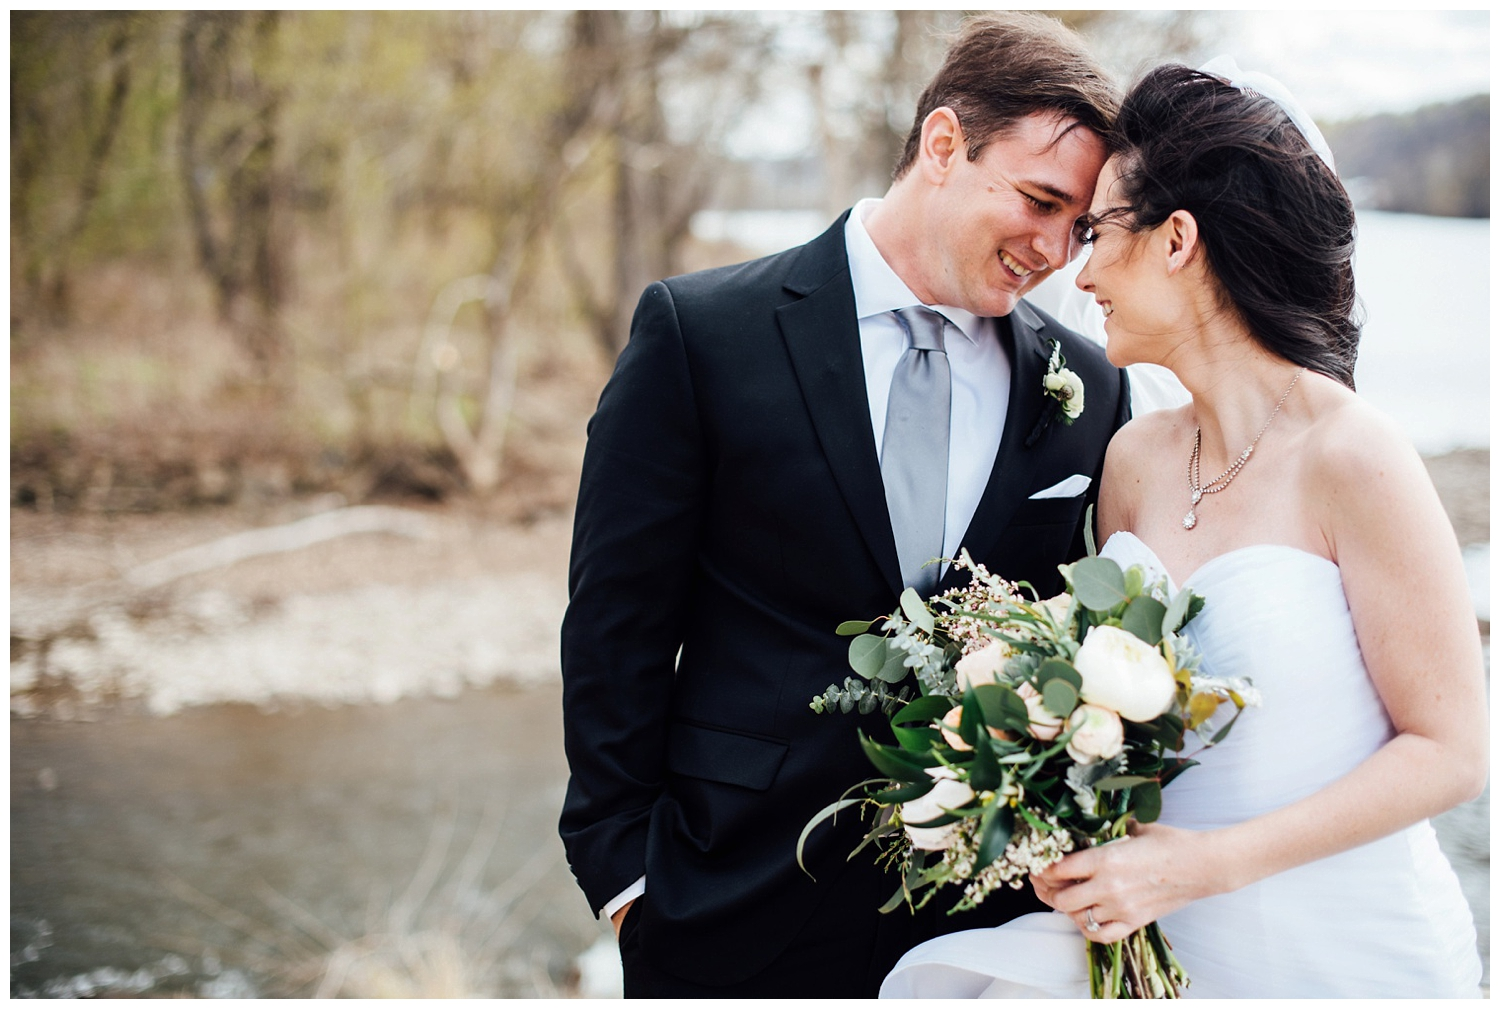 New York, New Jersey and Pennsylvania wedding vendors, resources and inspiration for the modern couple | Bride and Groom romance portrait